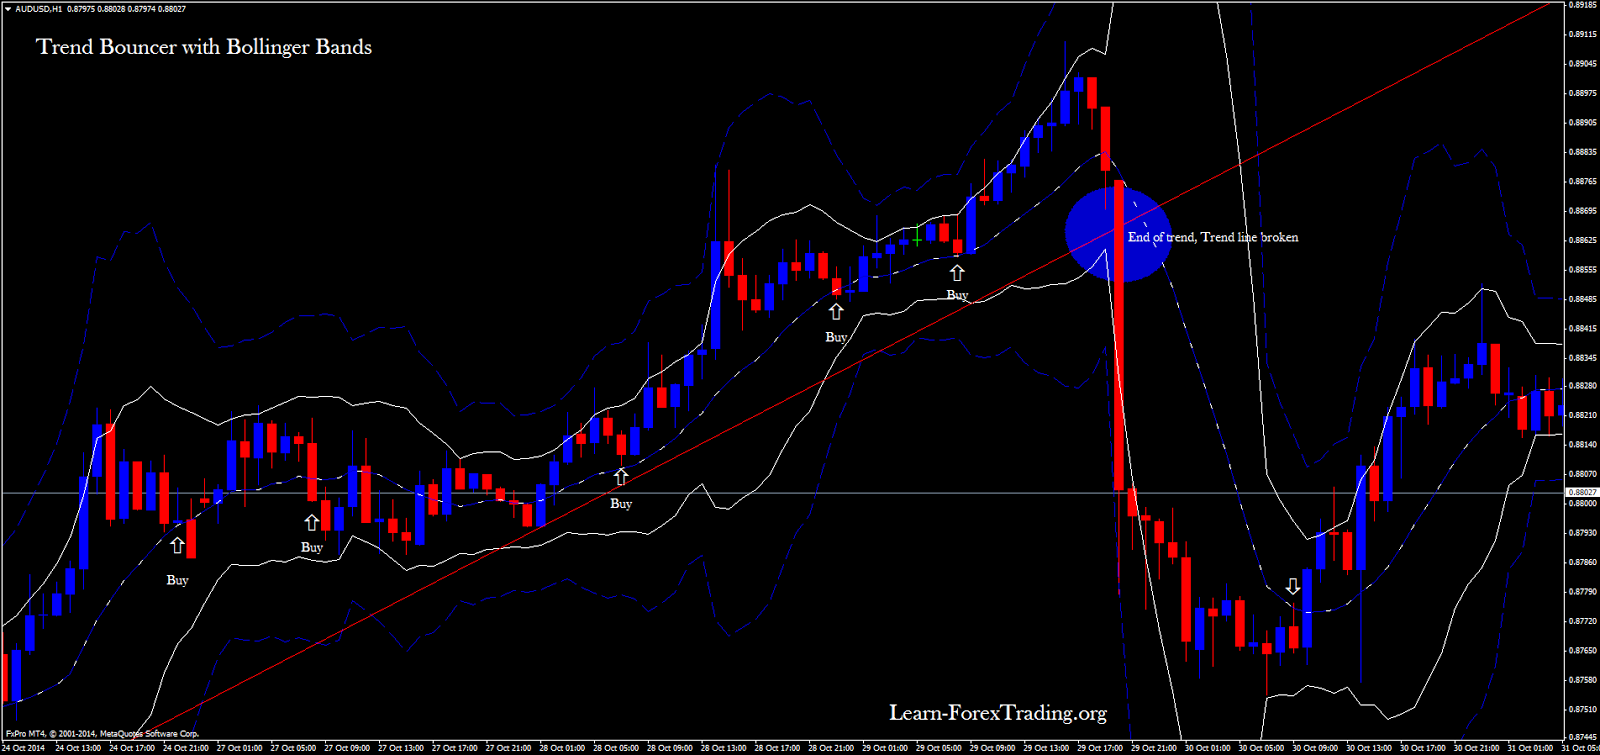 Trend bouncer .with bollinger bands